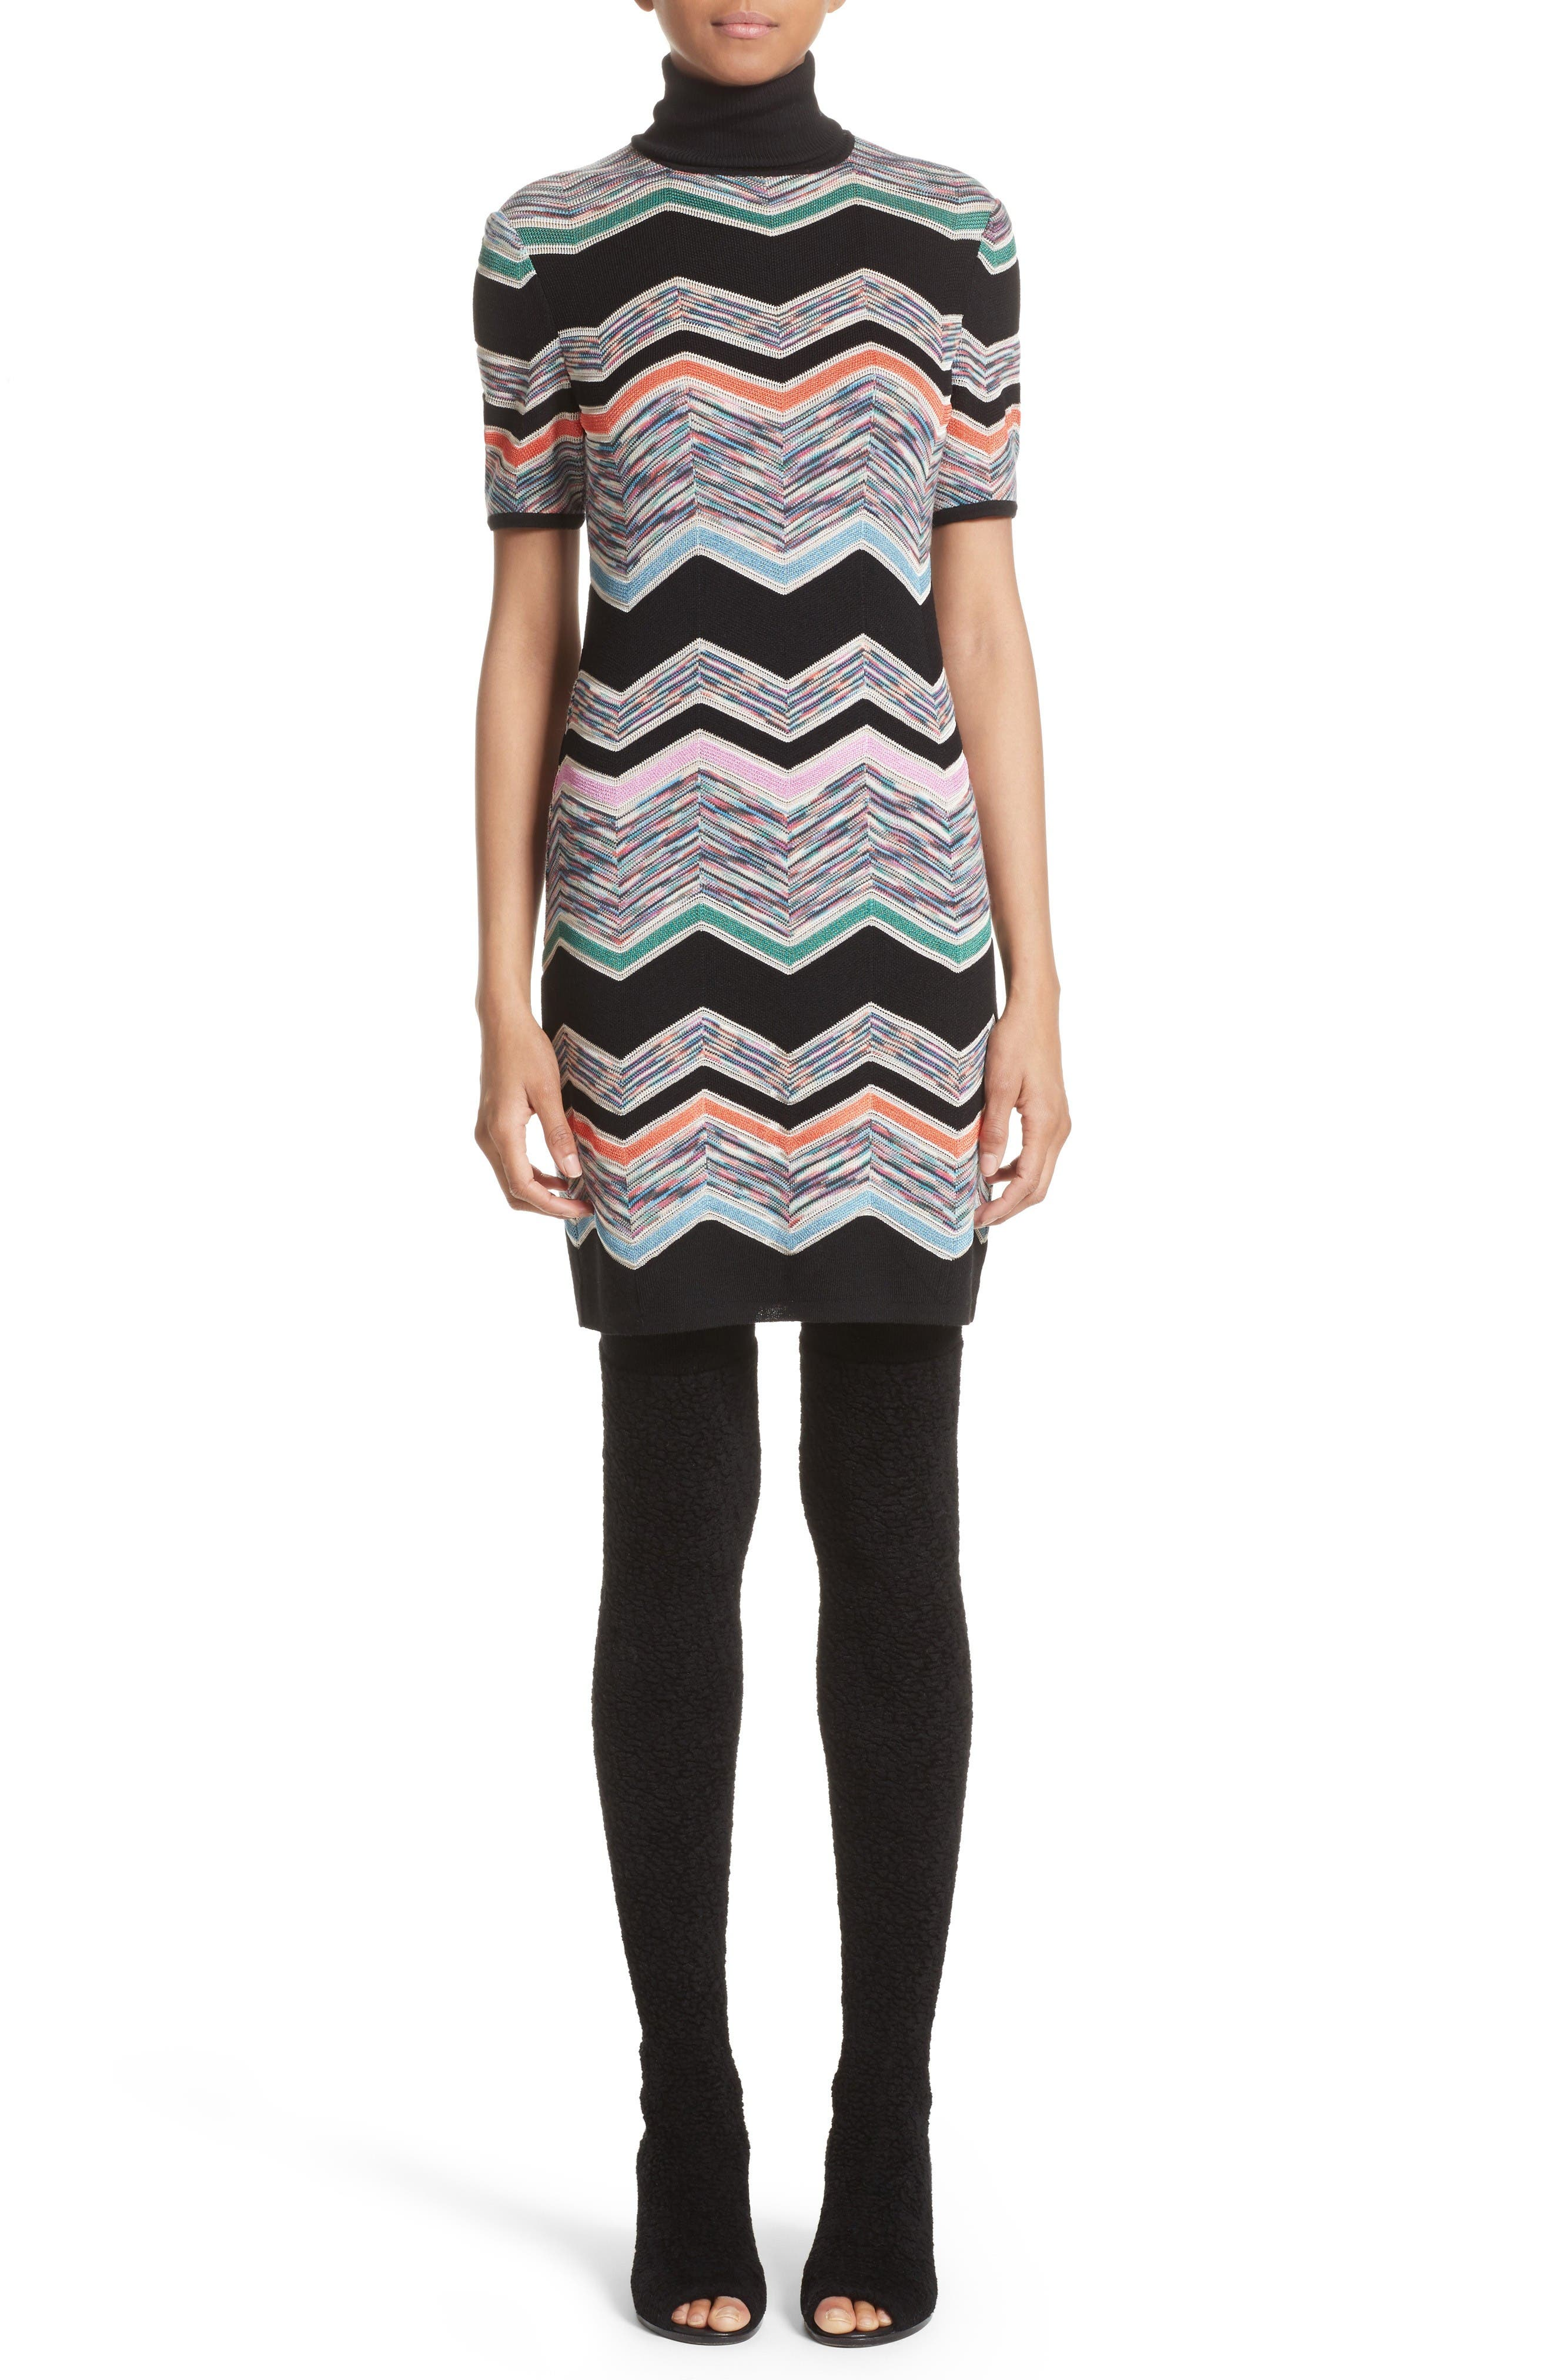 Missoni Zigzag Jacquard Knit Dress